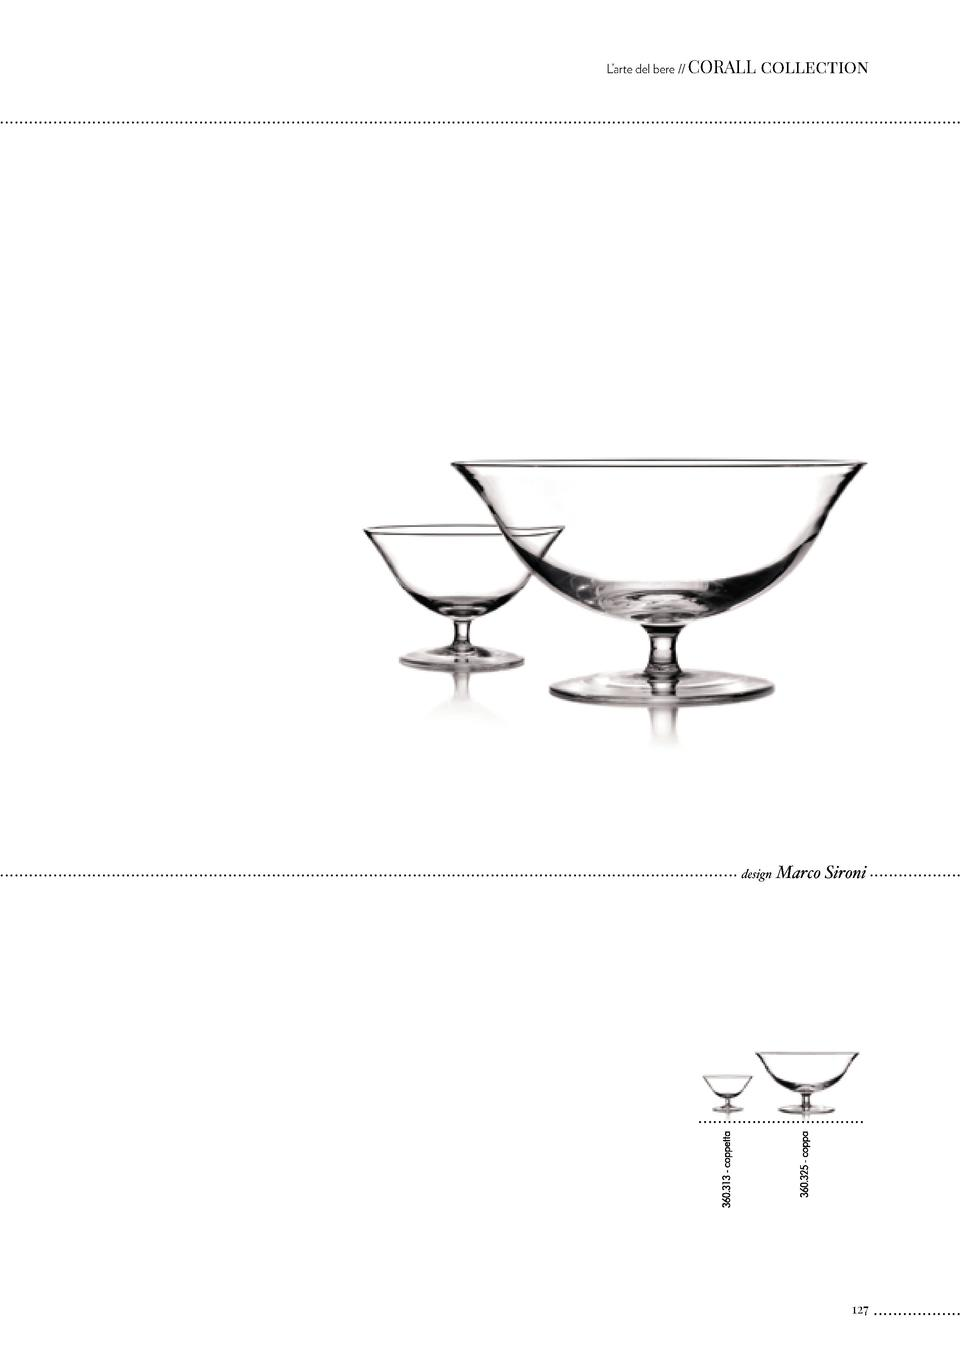 L   arte del bere    CORALL  collection  design  Marco Sironi  127